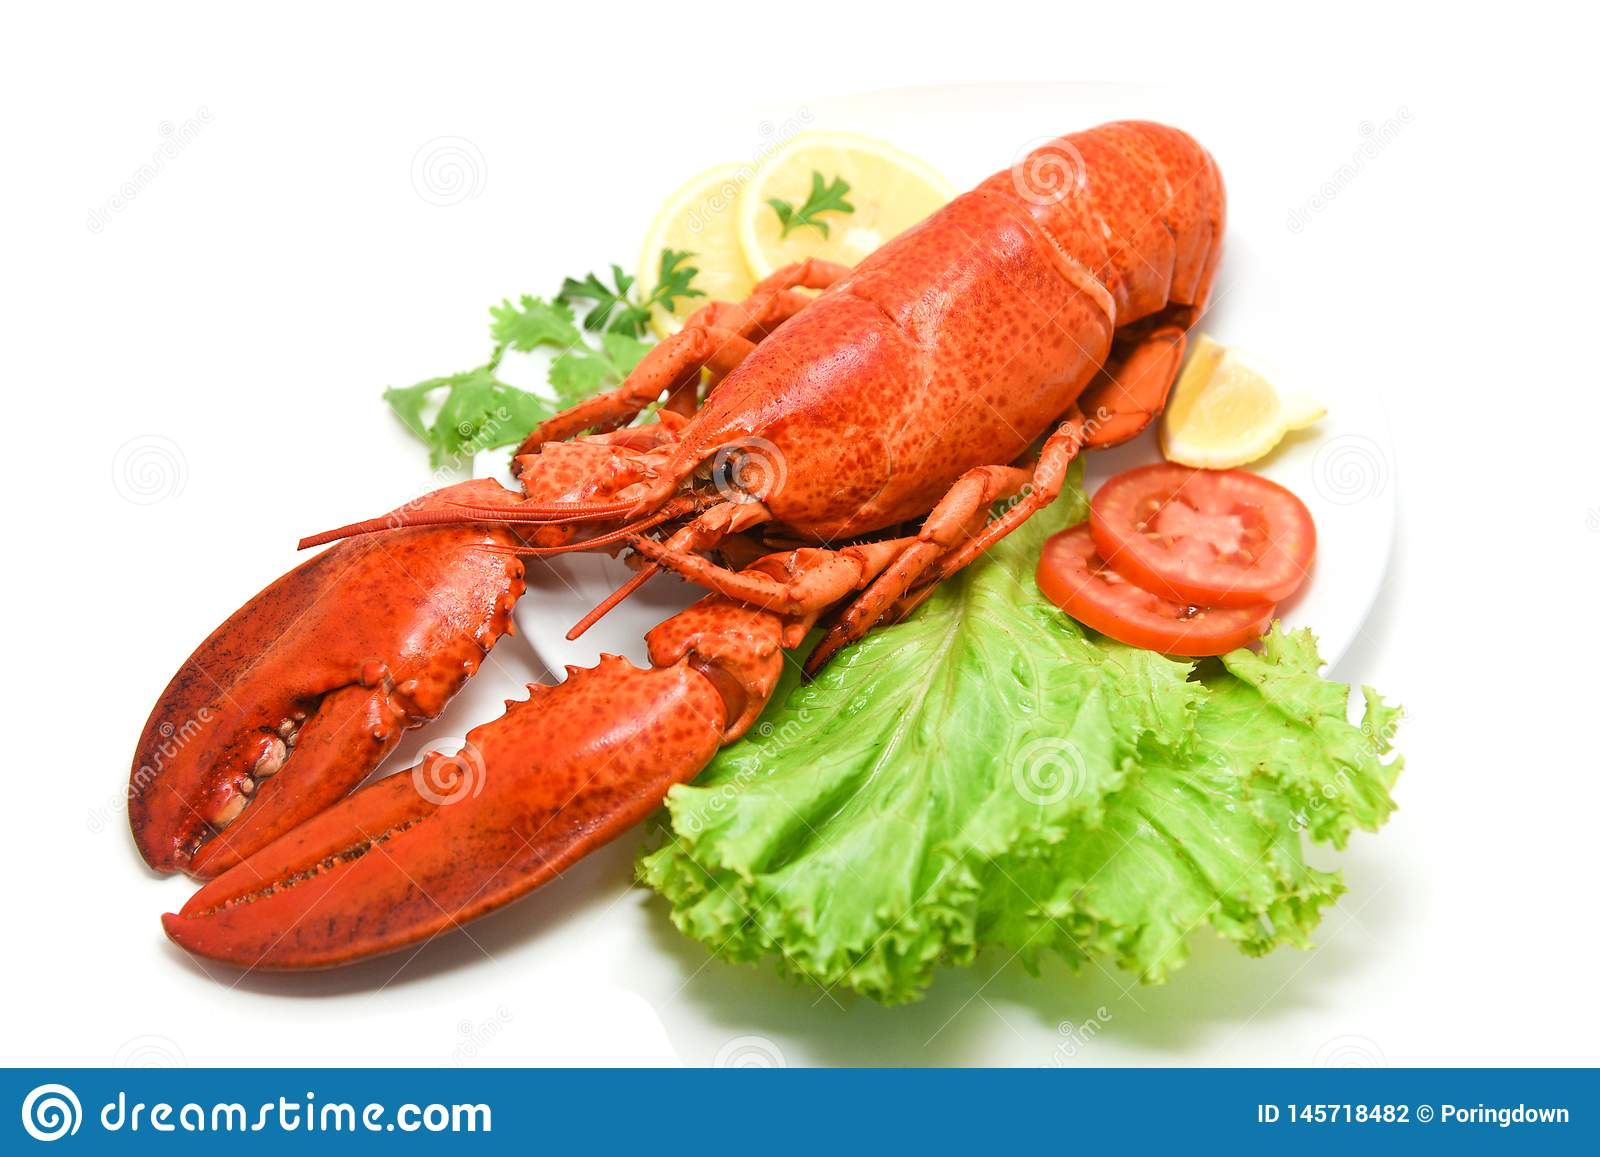 Lobster isolated seafood delicious white plate with lemon coriander and salad lettuce / Close up of steamed lobster food